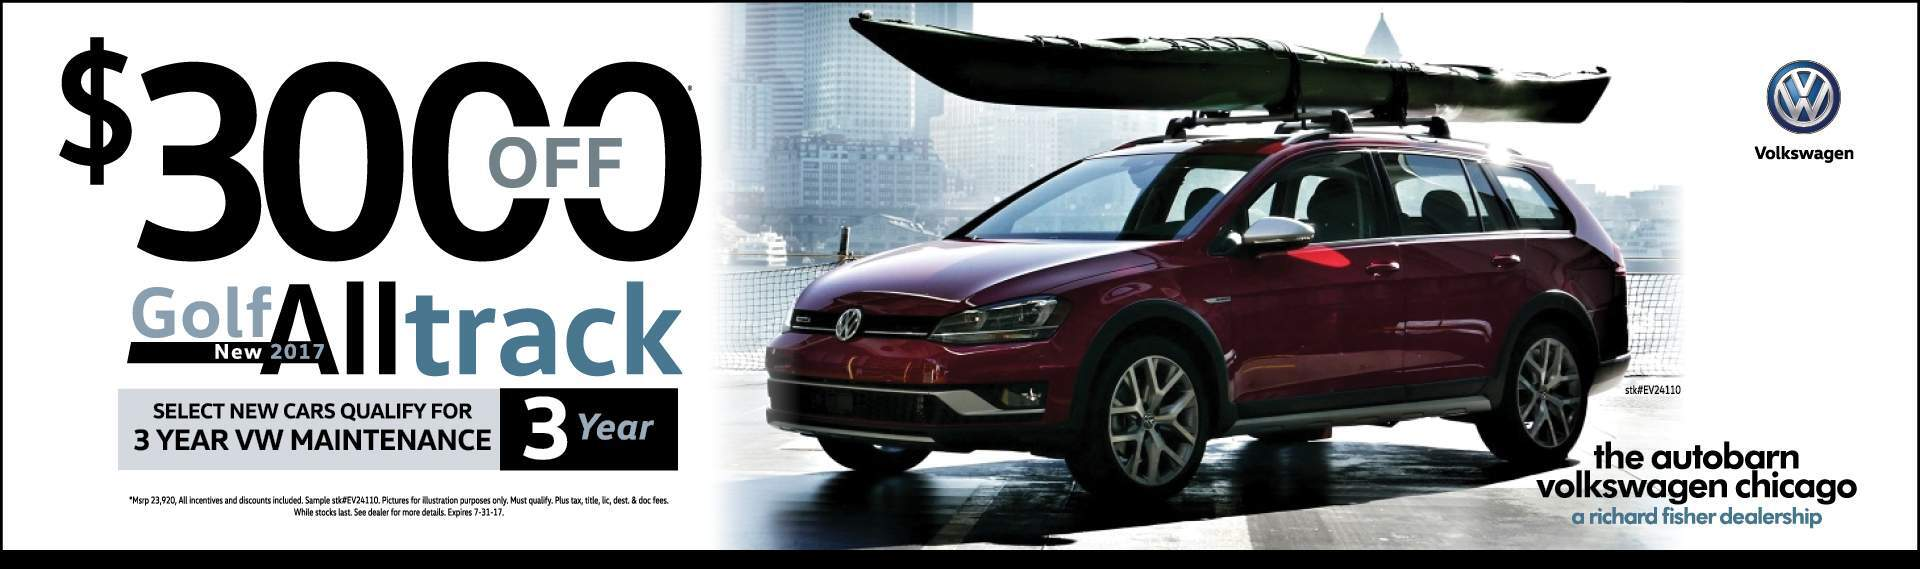 VW City Chicago Jetta Lease July